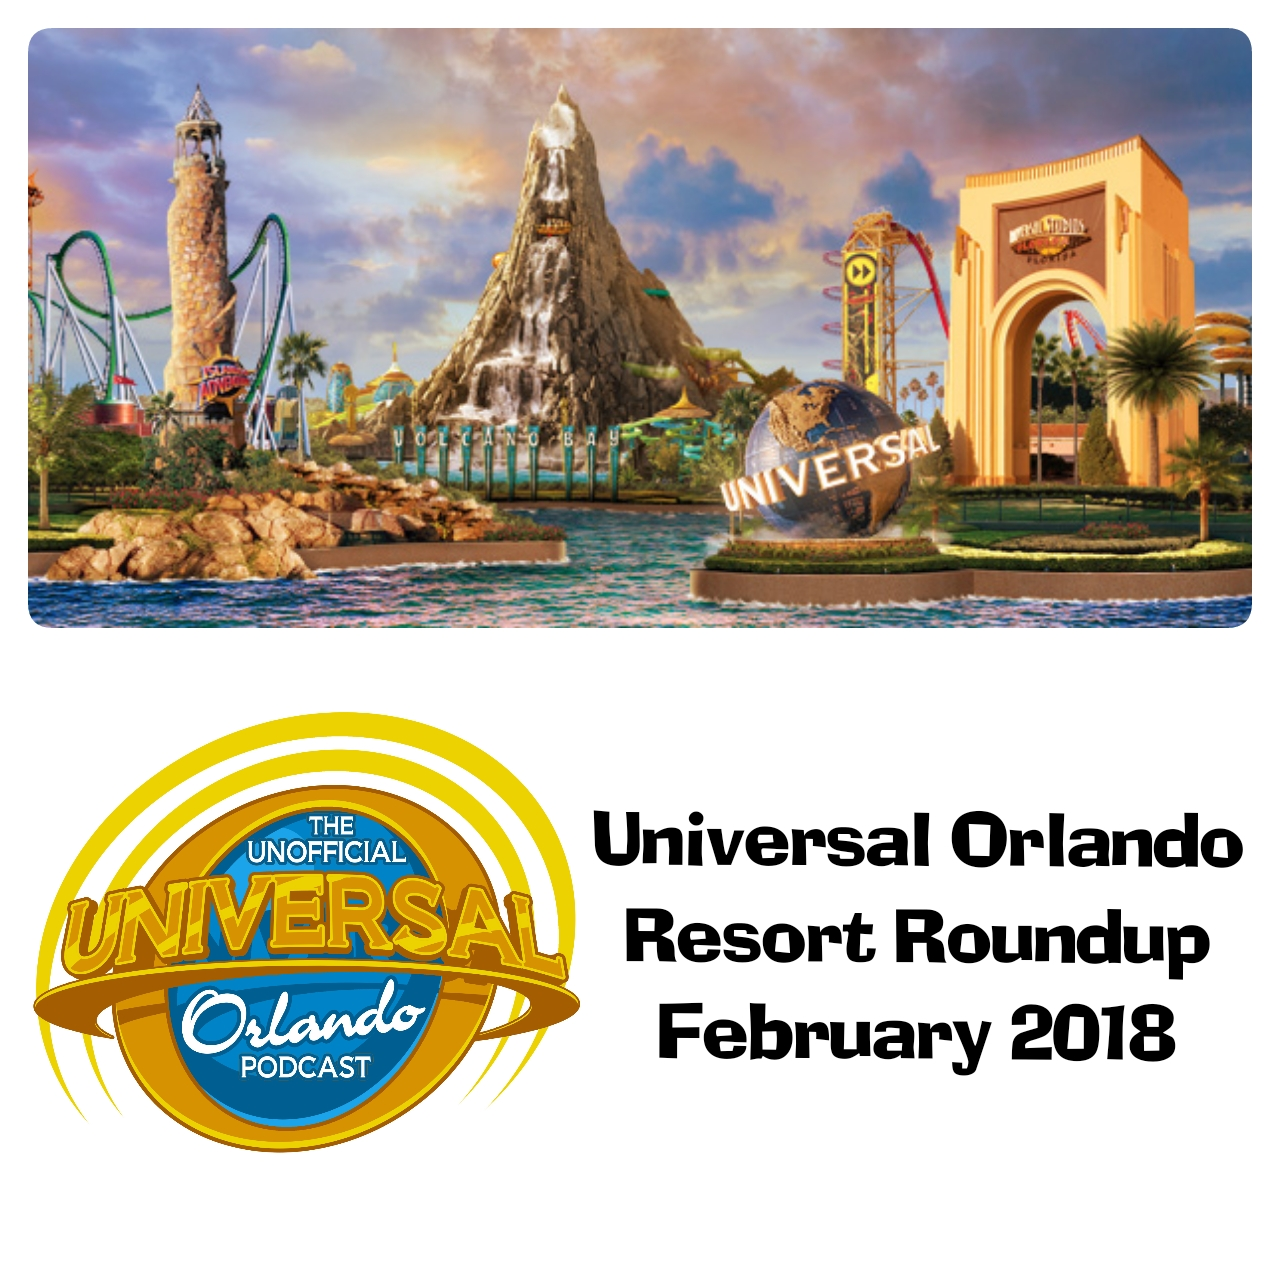 Unofficial Universal Orlando Podcast : March 2018